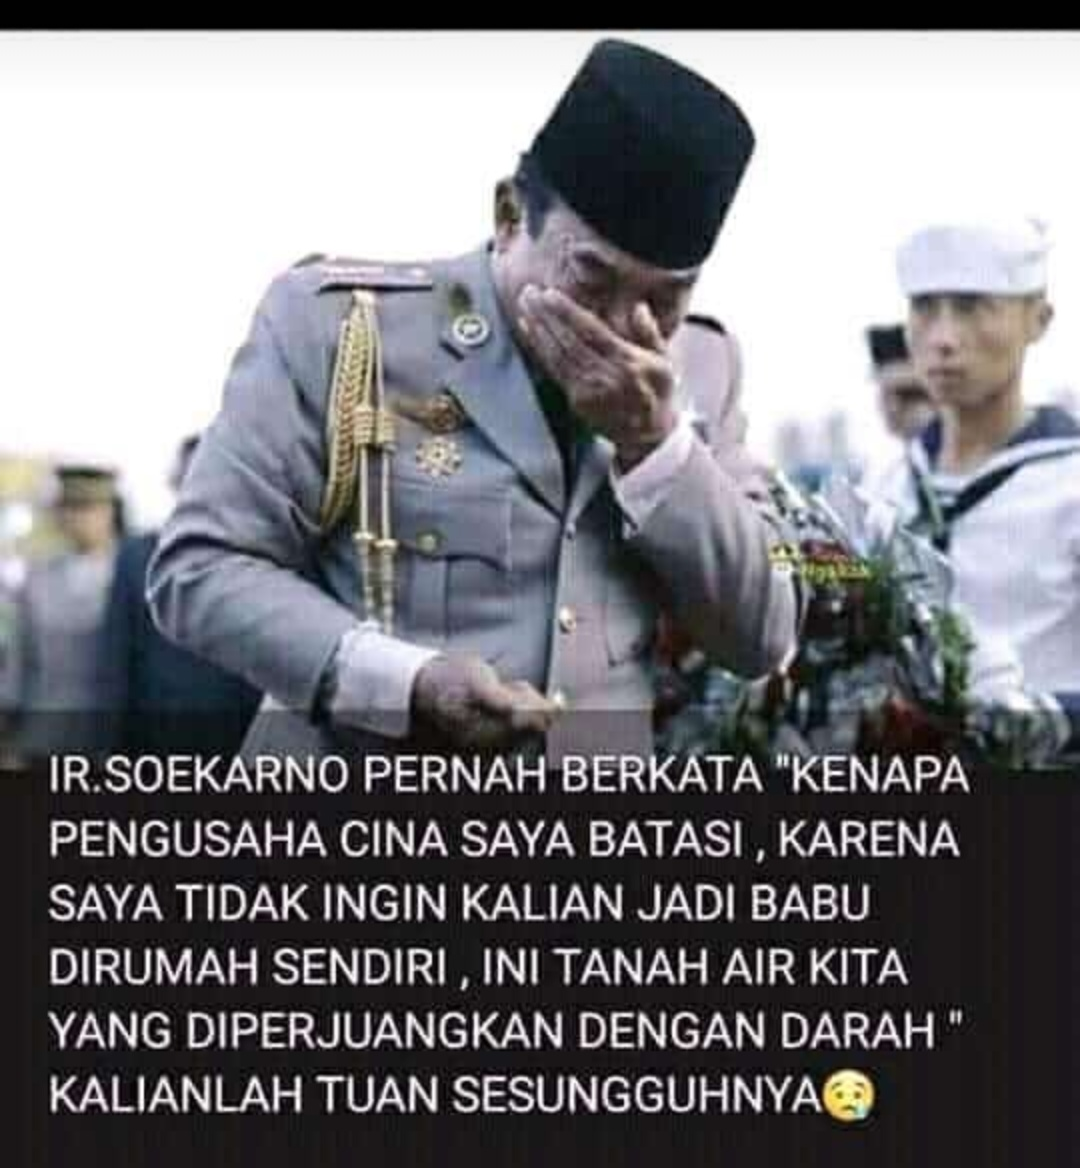 sukarno anti indovoices